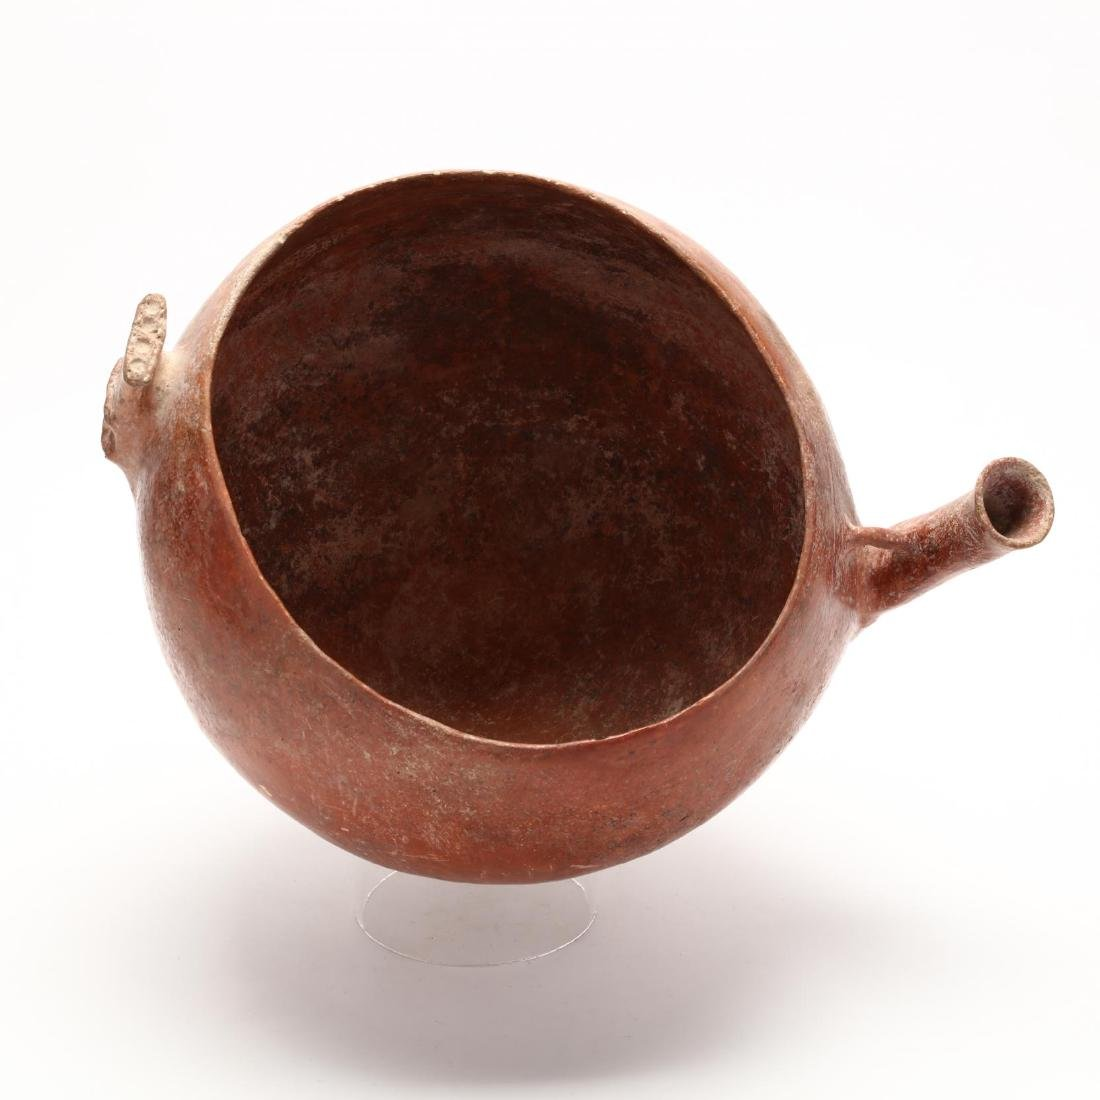 Cypriot Bronze Age Large Polished Red Ware Bowl With - 3